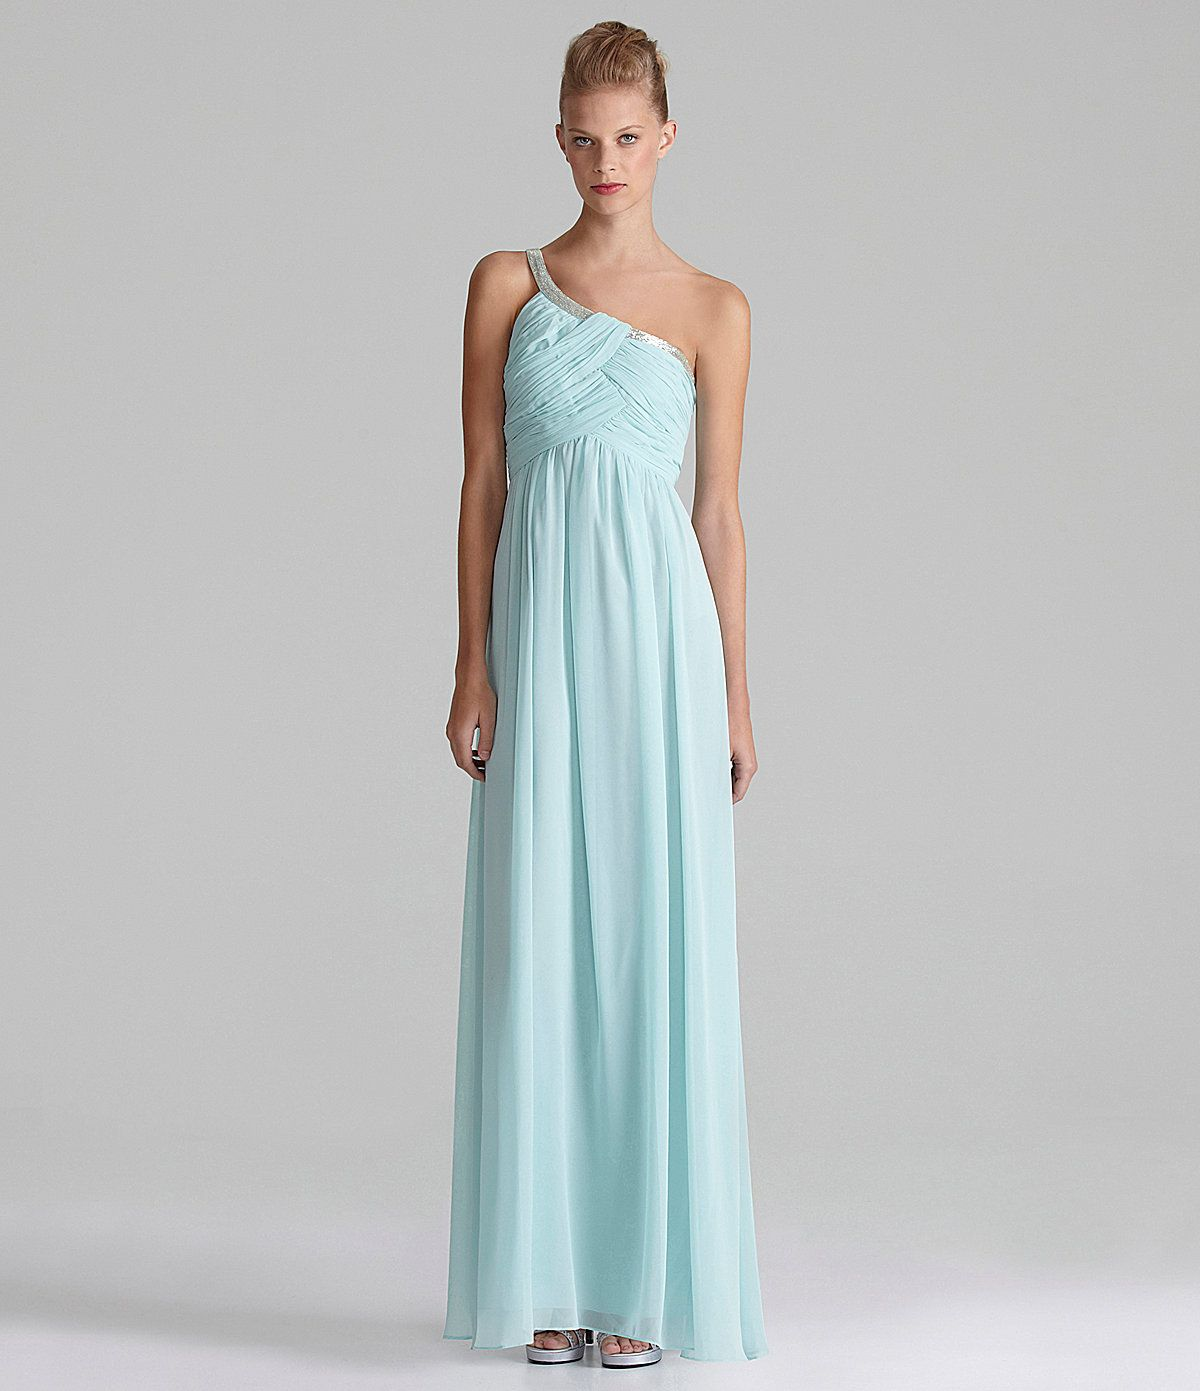 Calvin Klein Wedding Gowns: Calvin Klein One-Shoulder Chiffon Gown